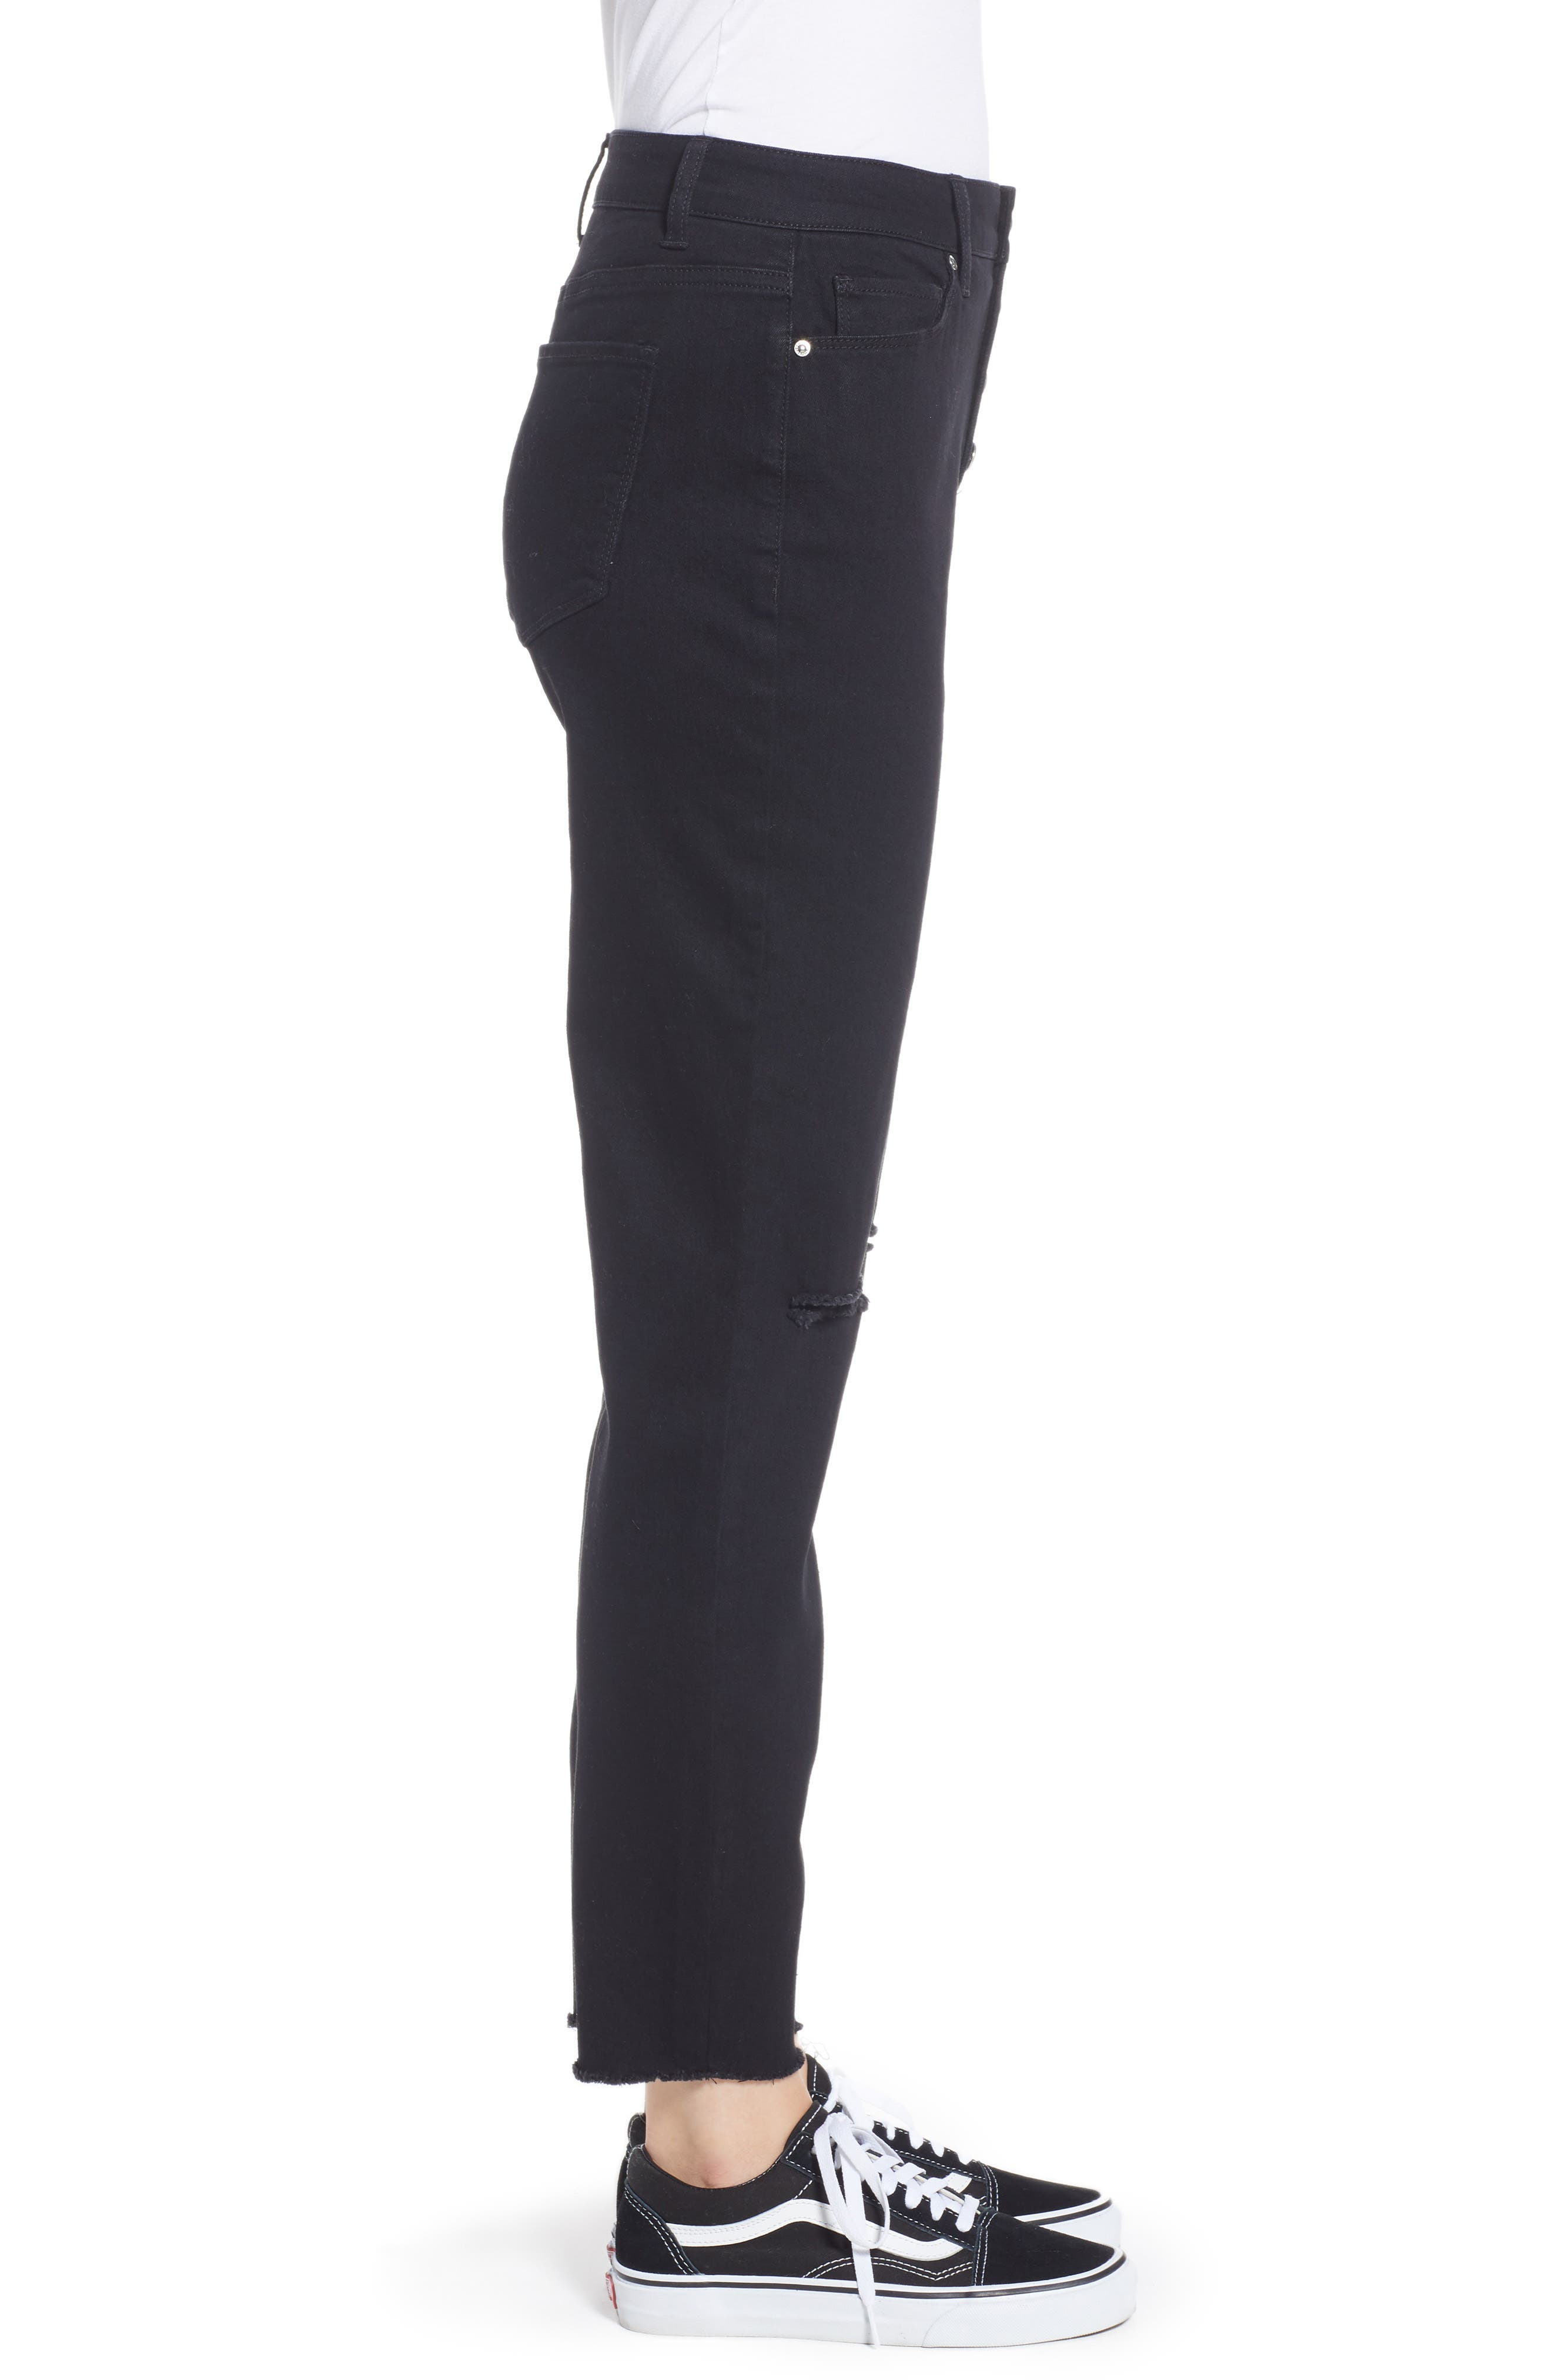 Ripped High Waist Ankle Skinny Jeans,                             Alternate thumbnail 6, color,                             Black Rinse